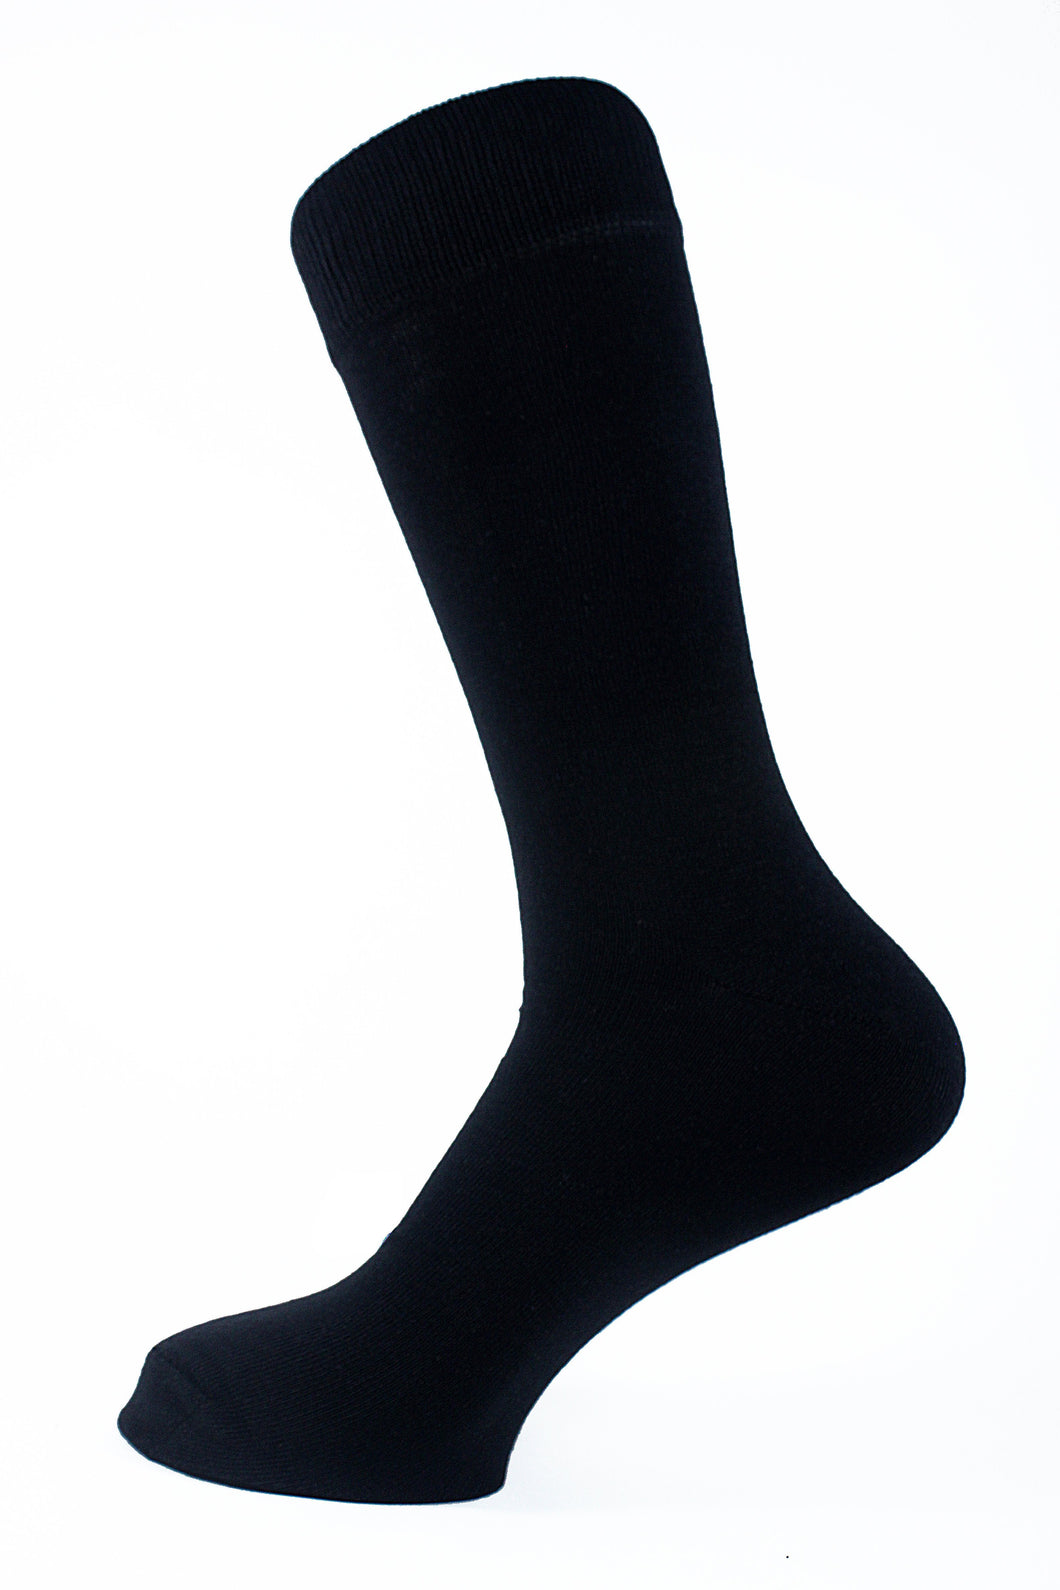 Plain Men Socks - samnoveltysocks.com